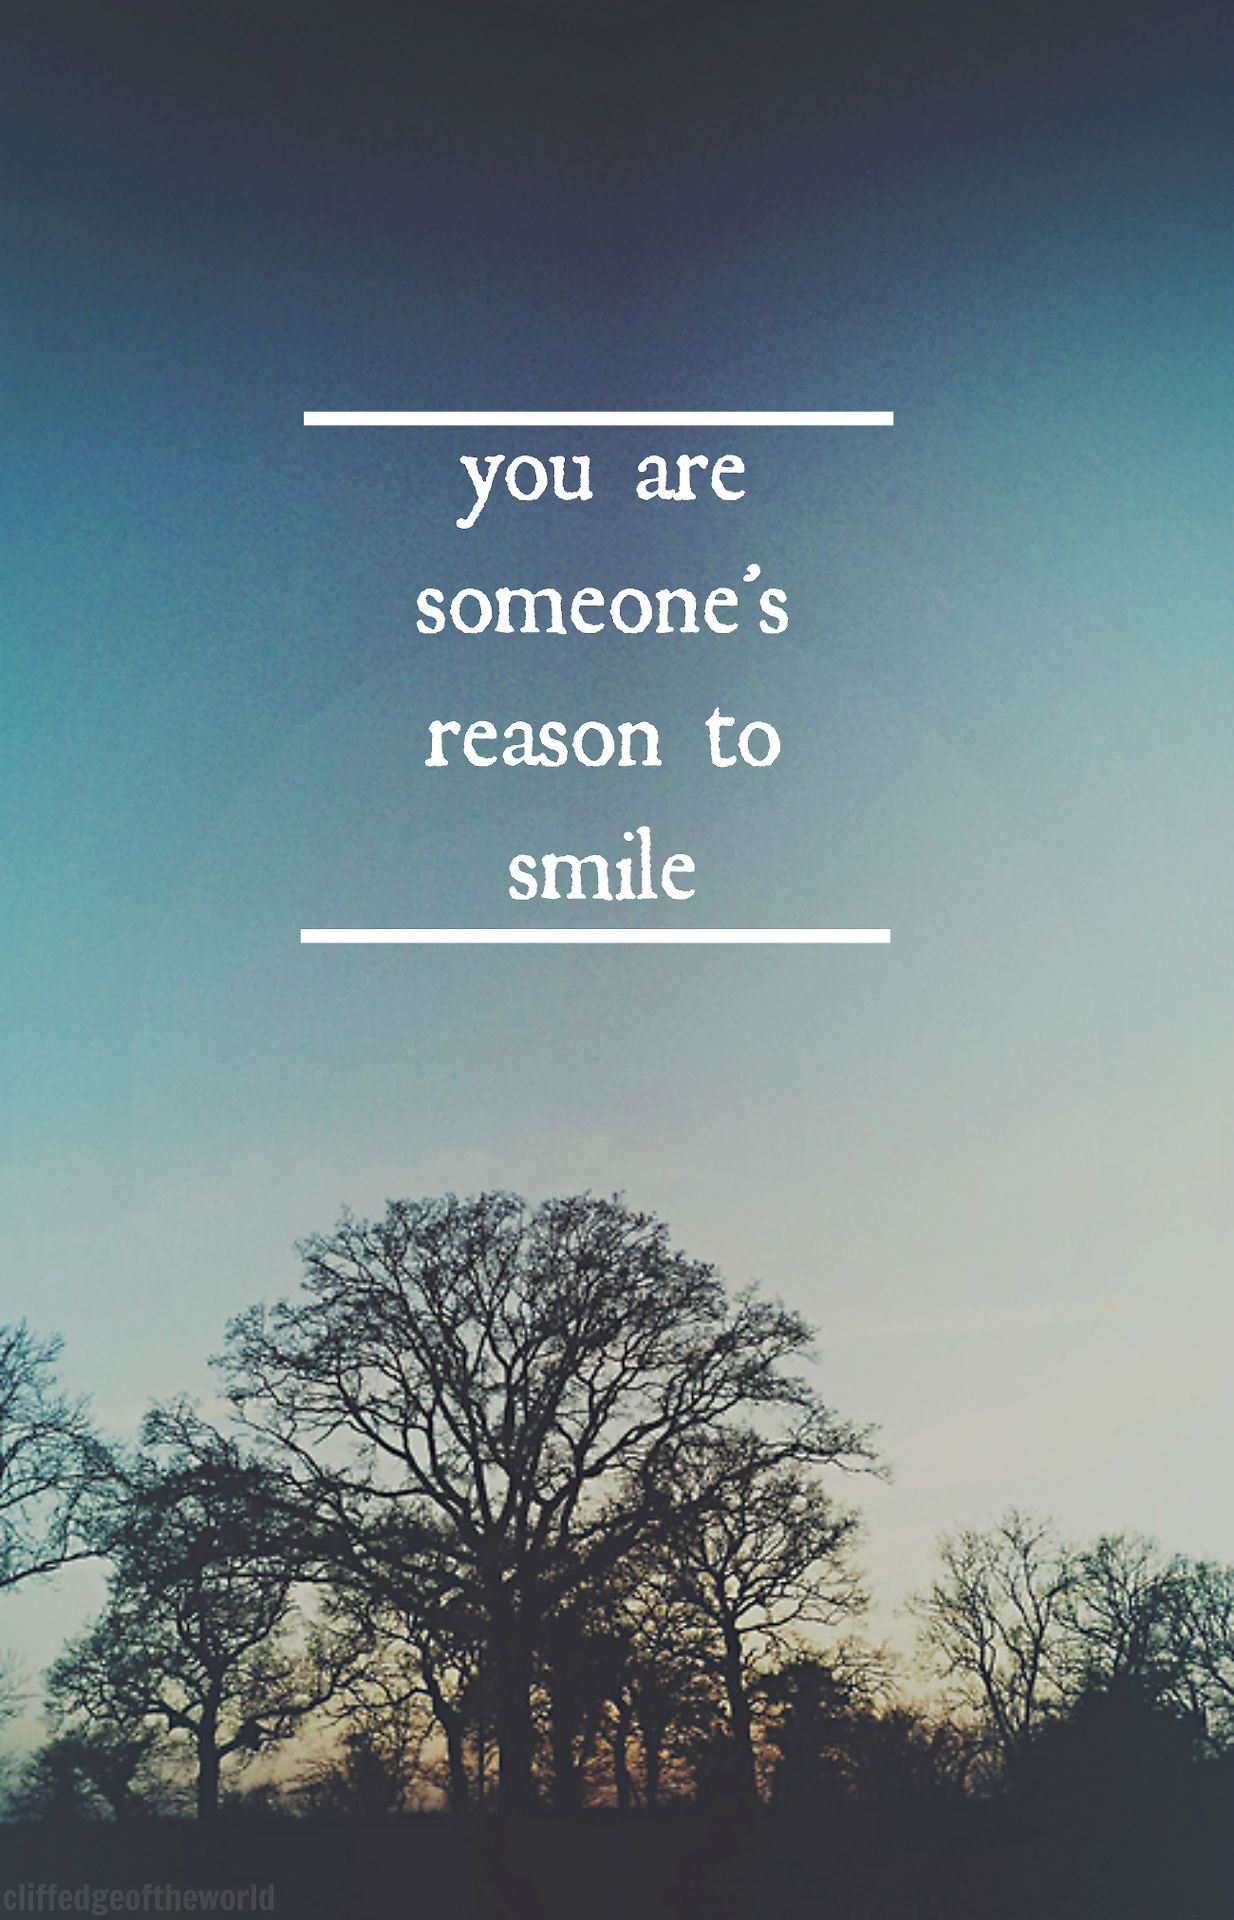 You are someone's reason to smile :)